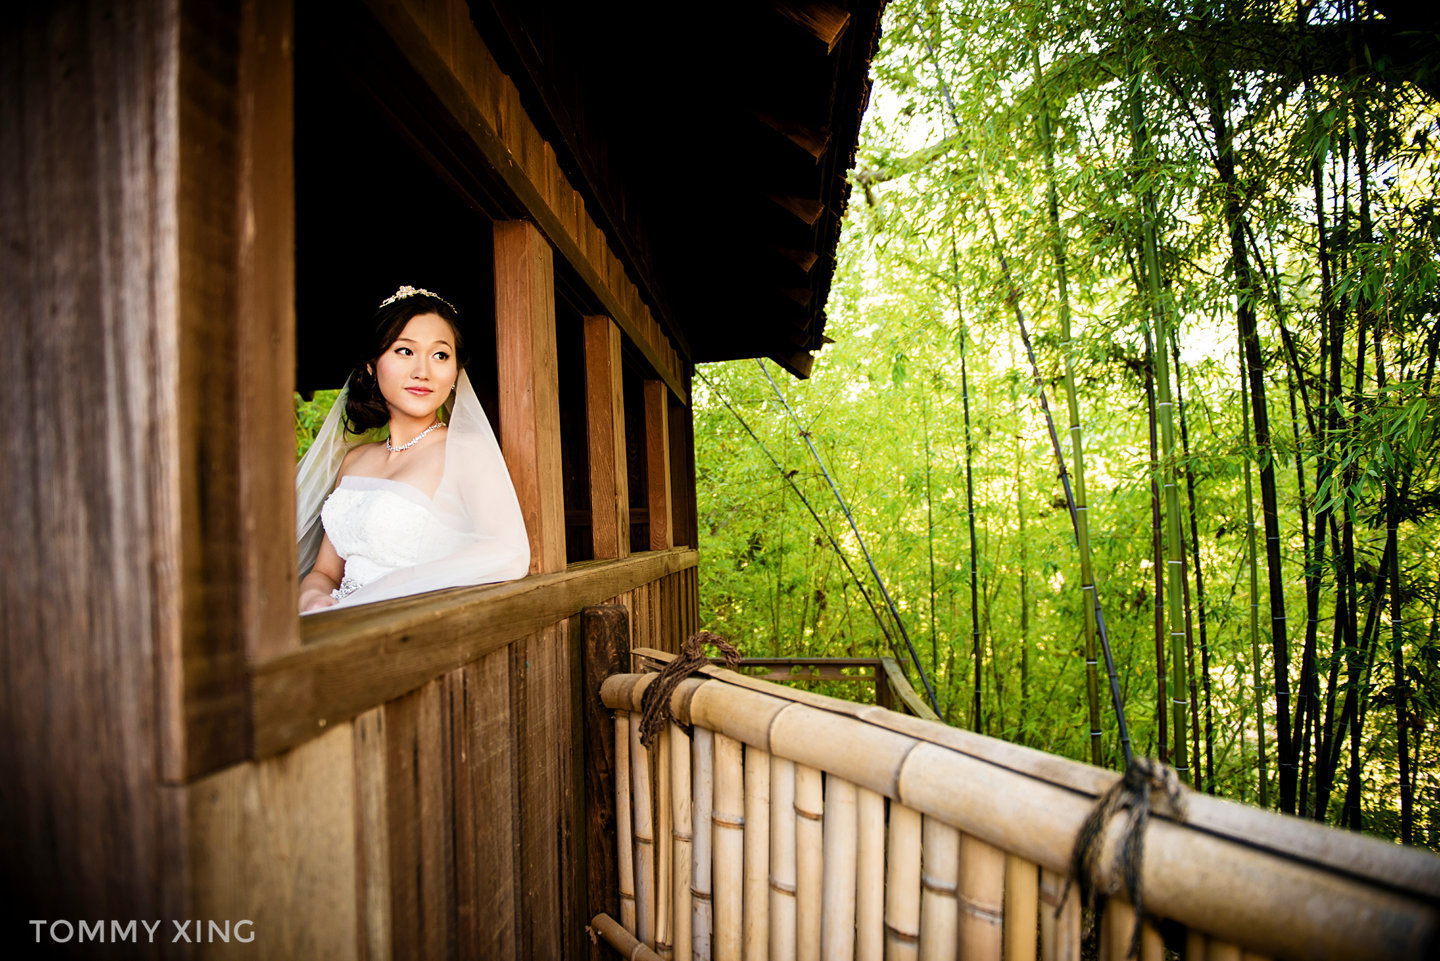 San Francisco Bay Area Chinese Pre Wedding Photographer Tommy Xing 旧金山湾区婚纱照摄影 17.jpg